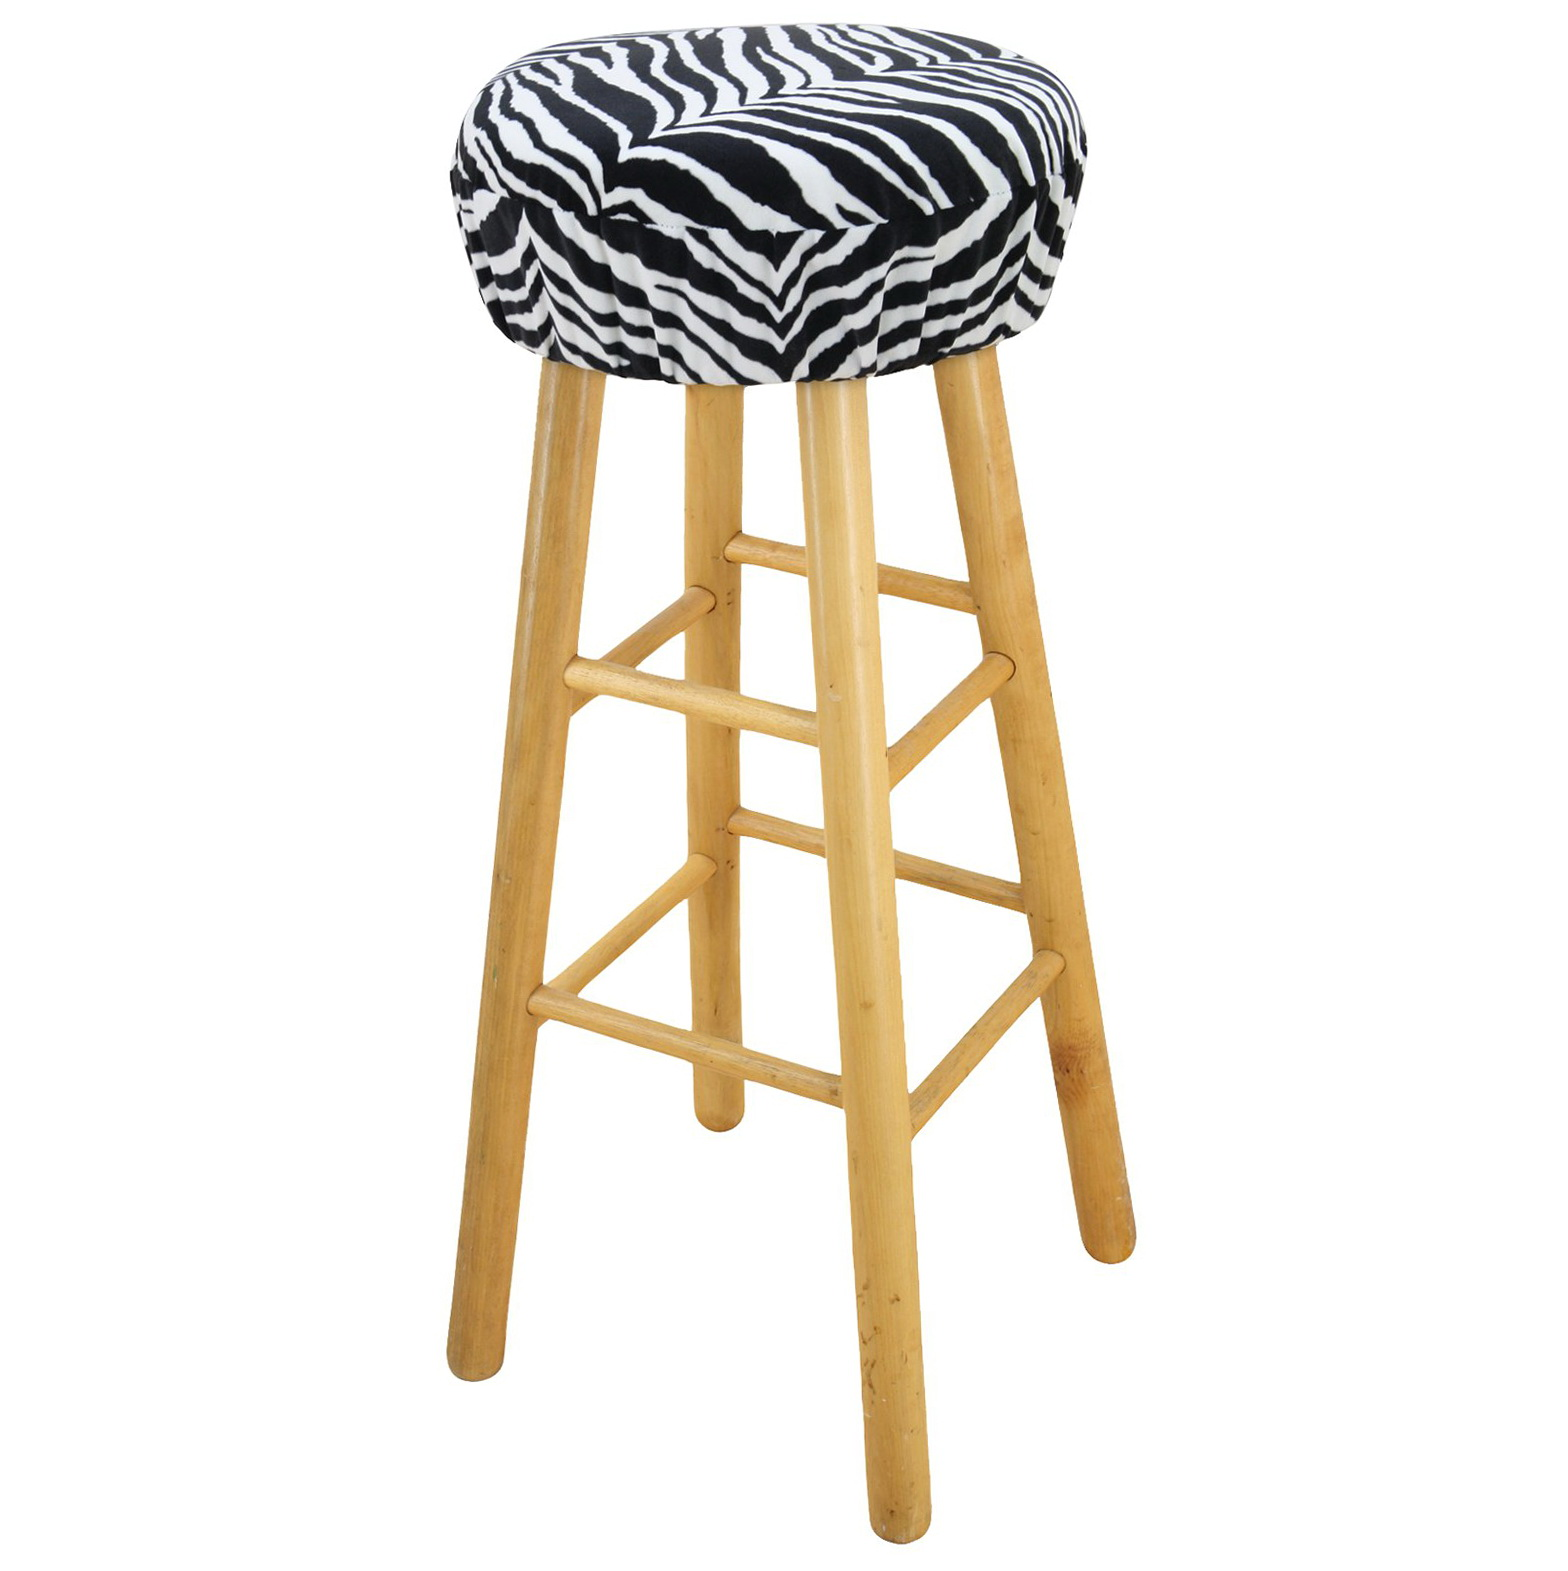 Round Bar Stool Cushion Covers Home Design Ideas : round bar stool cushion covers from www.theenergylibrary.com size 1568 x 1571 jpeg 258kB